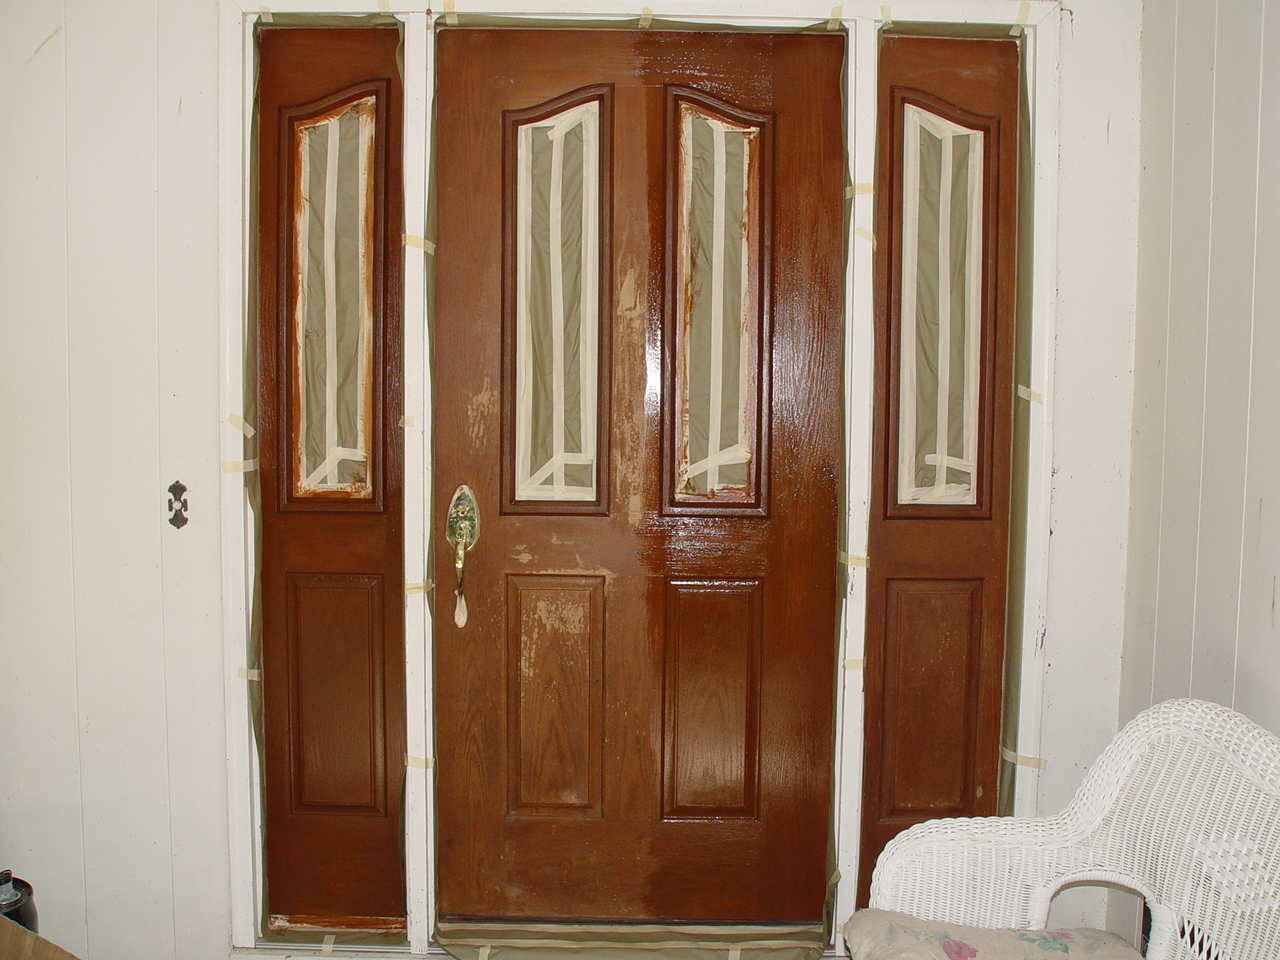 960 #4D200D Gel Stain Fiberglass Door Gel Stain Fiberglass Door Http://www  image Stainable Fiberglass Entry Doors 40231280